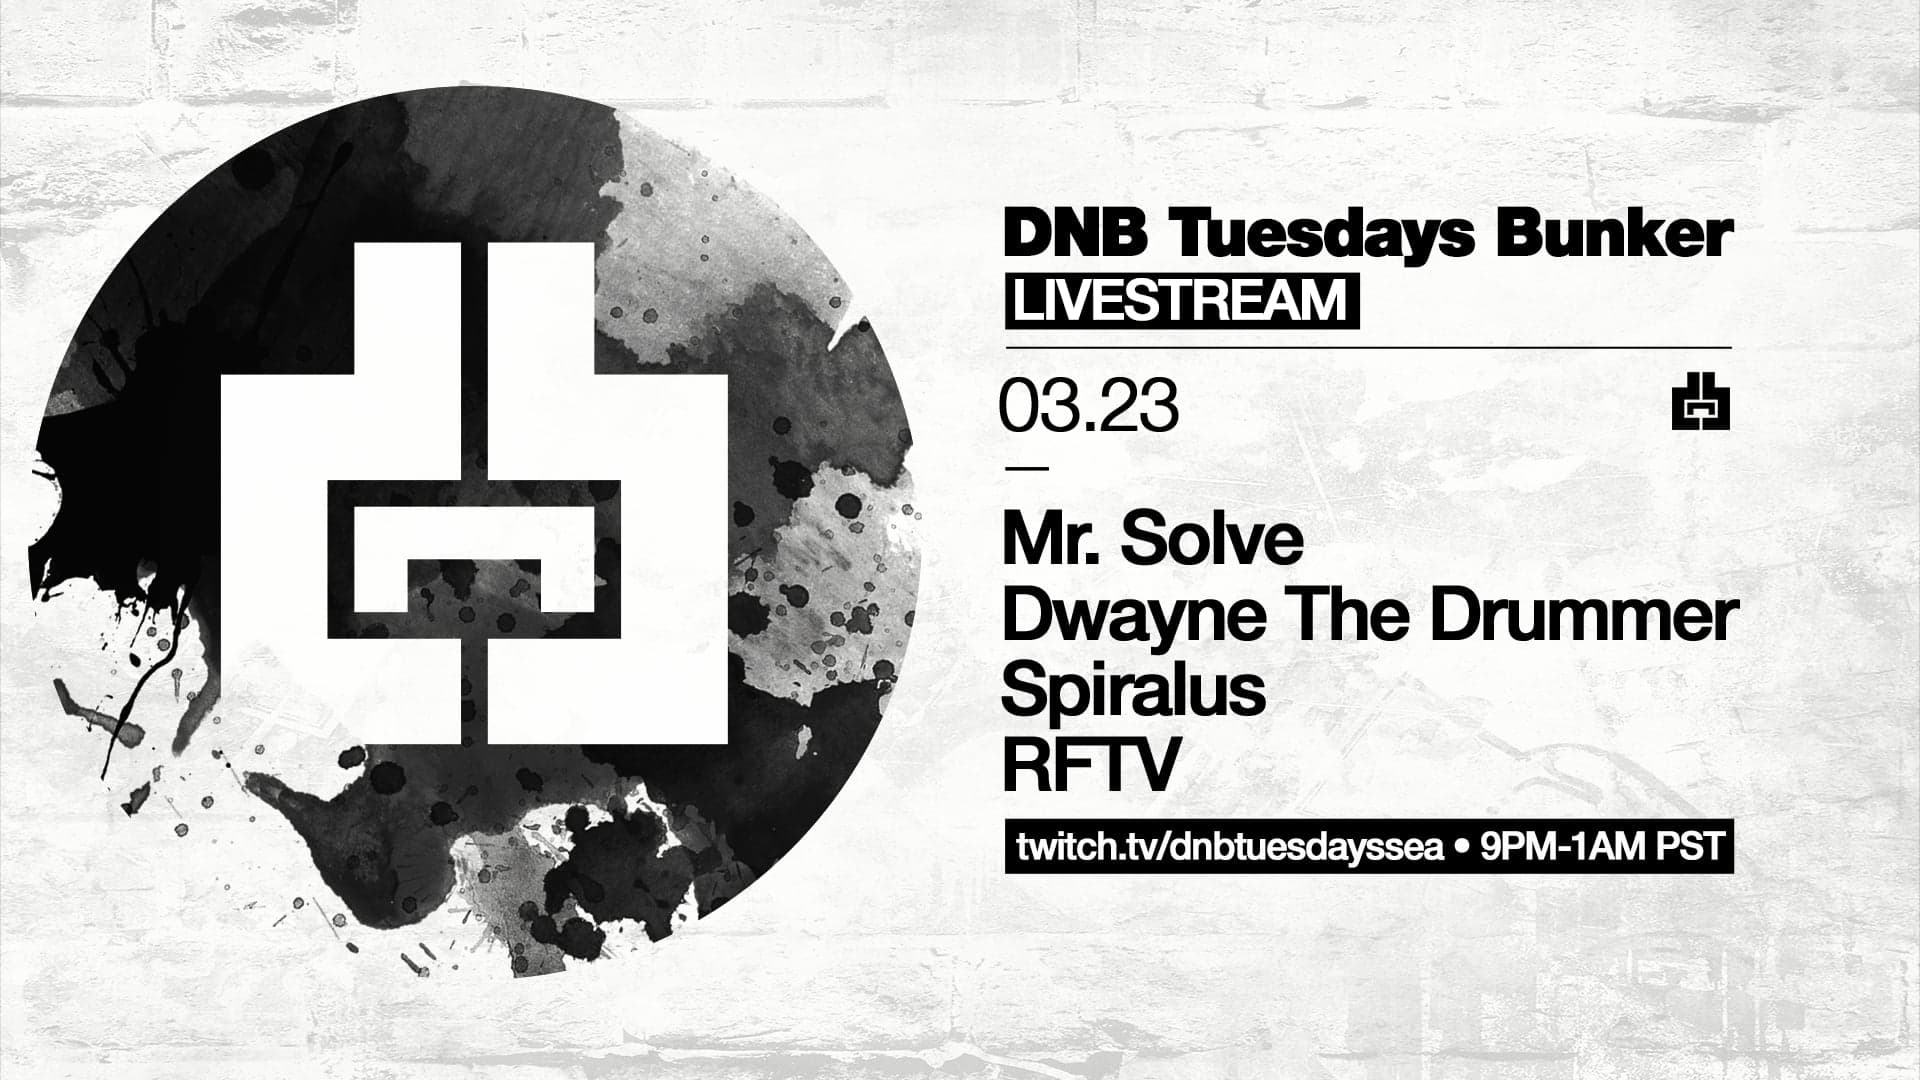 Mr. Solve at DNB Tuesdays March 23, 2021